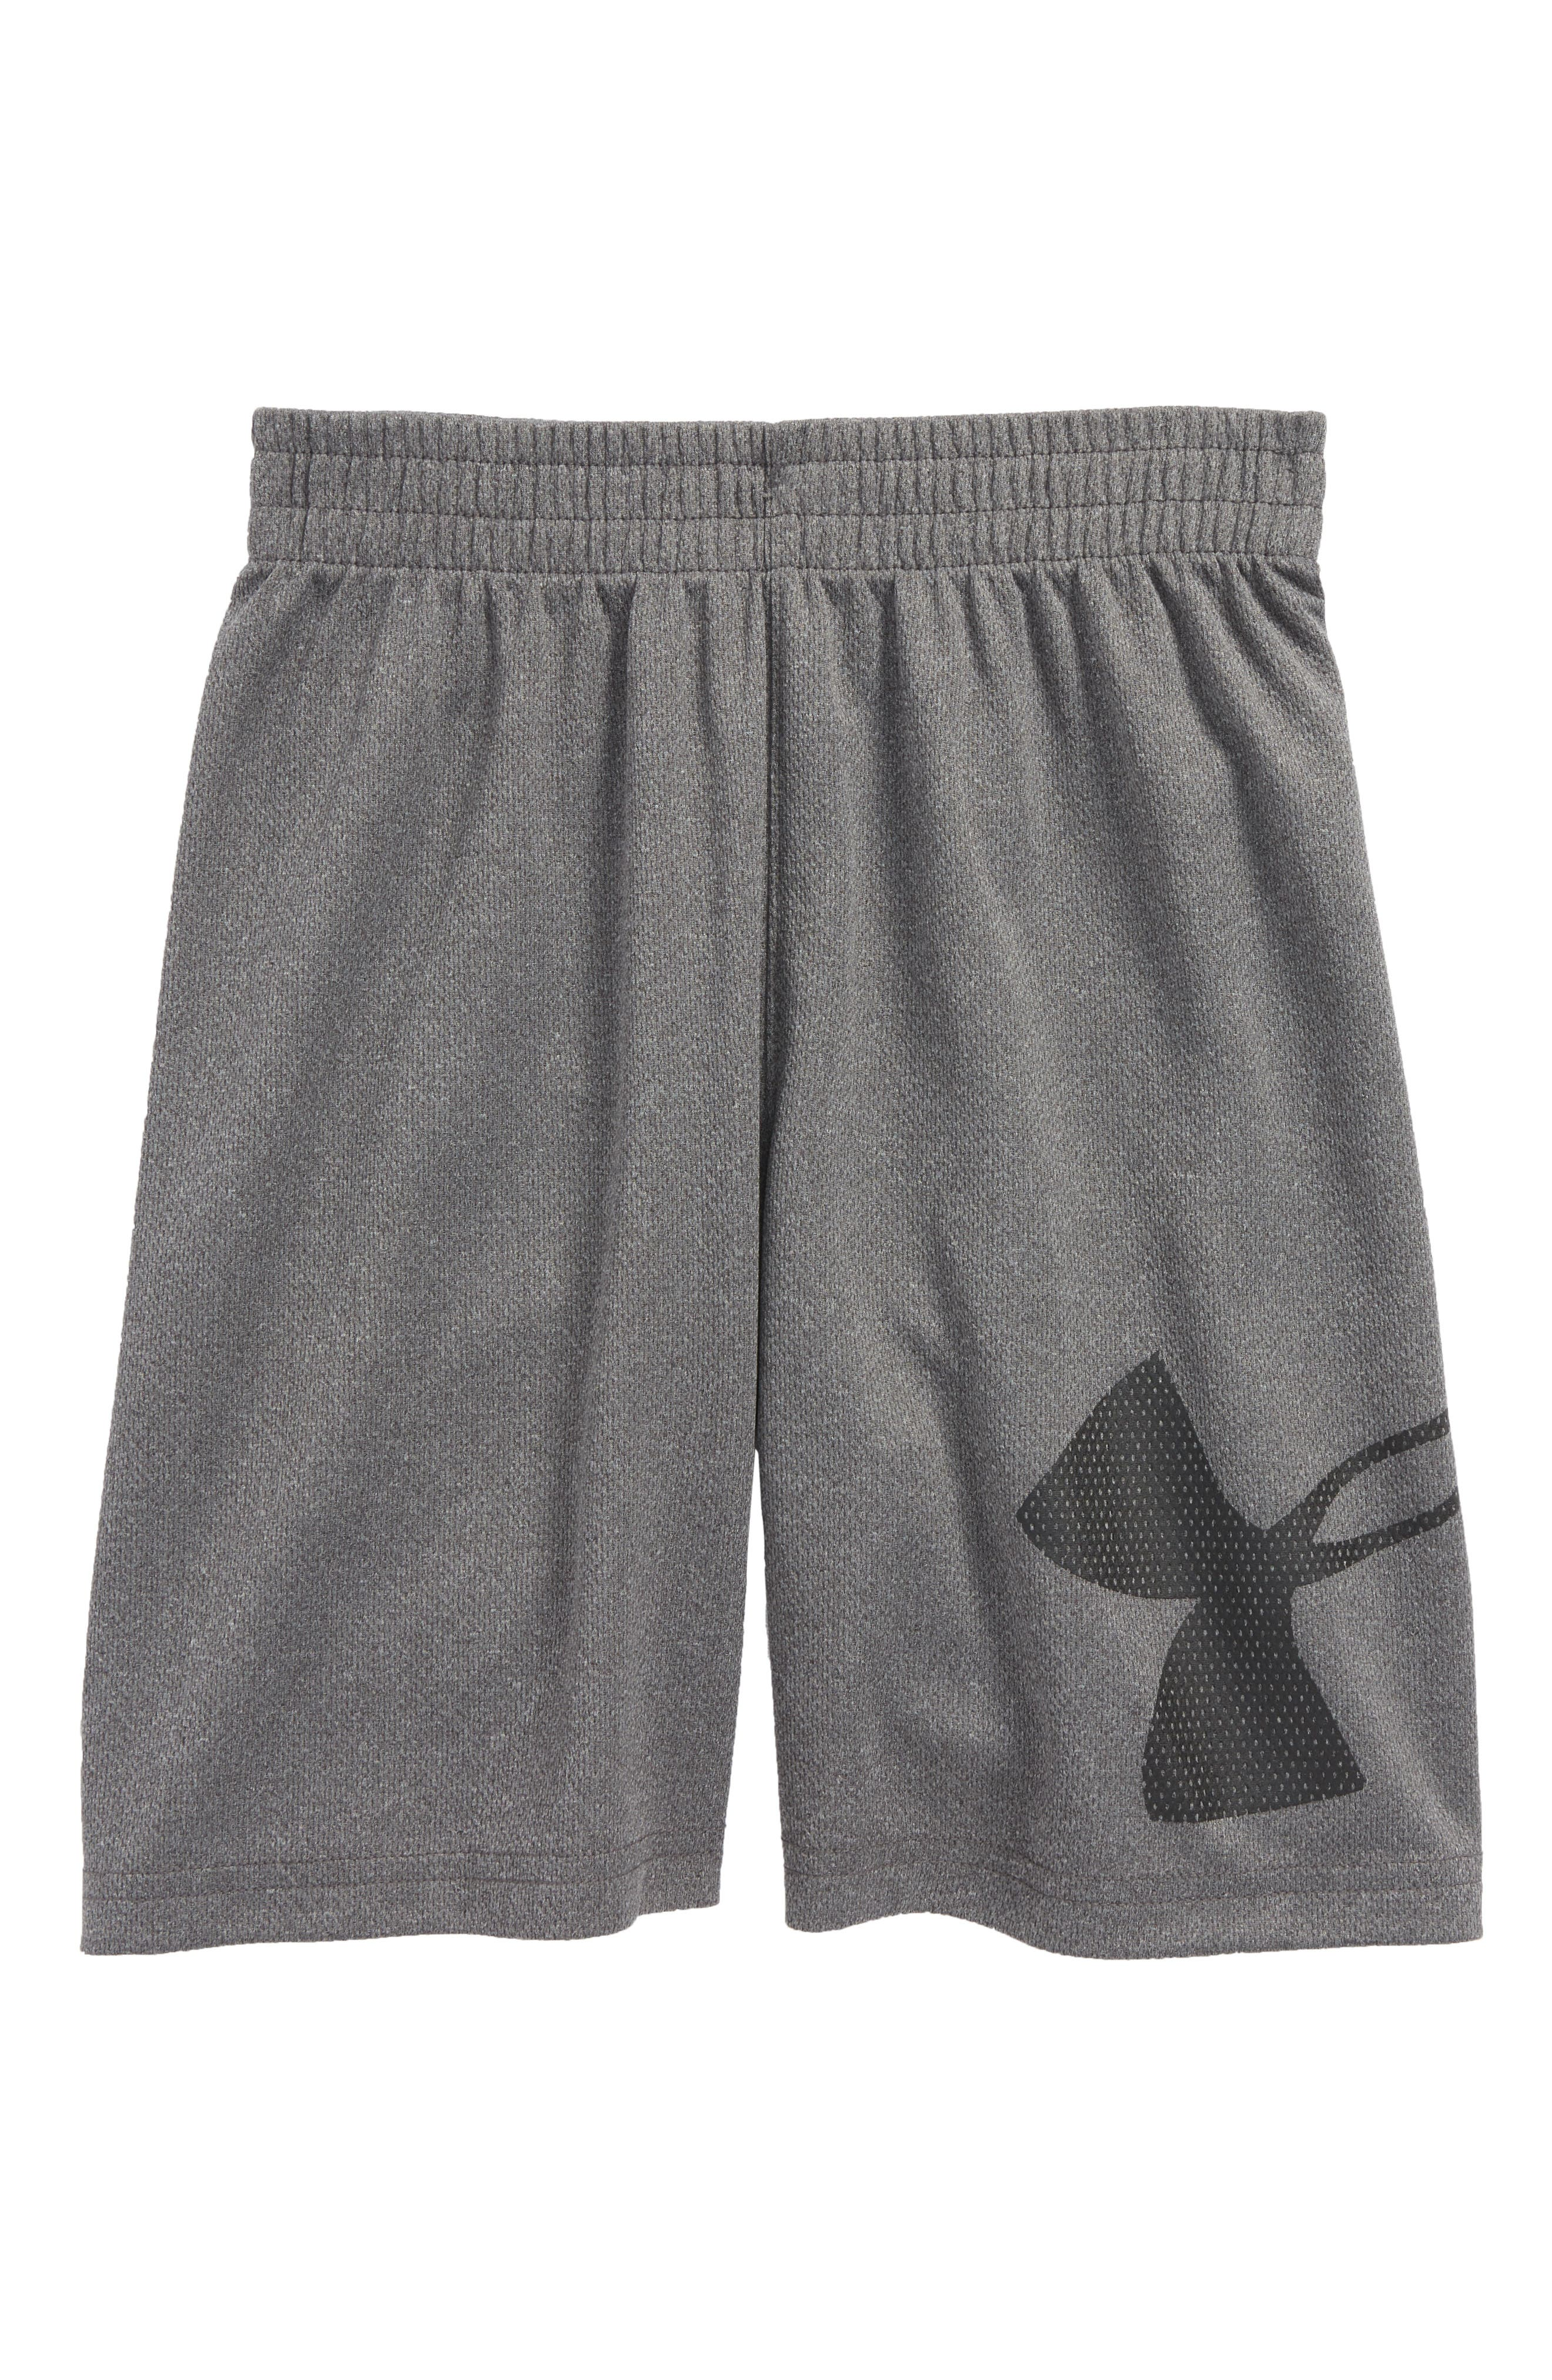 Zoom Striker Mesh HeatGear<sup>®</sup> Shorts,                         Main,                         color, 020